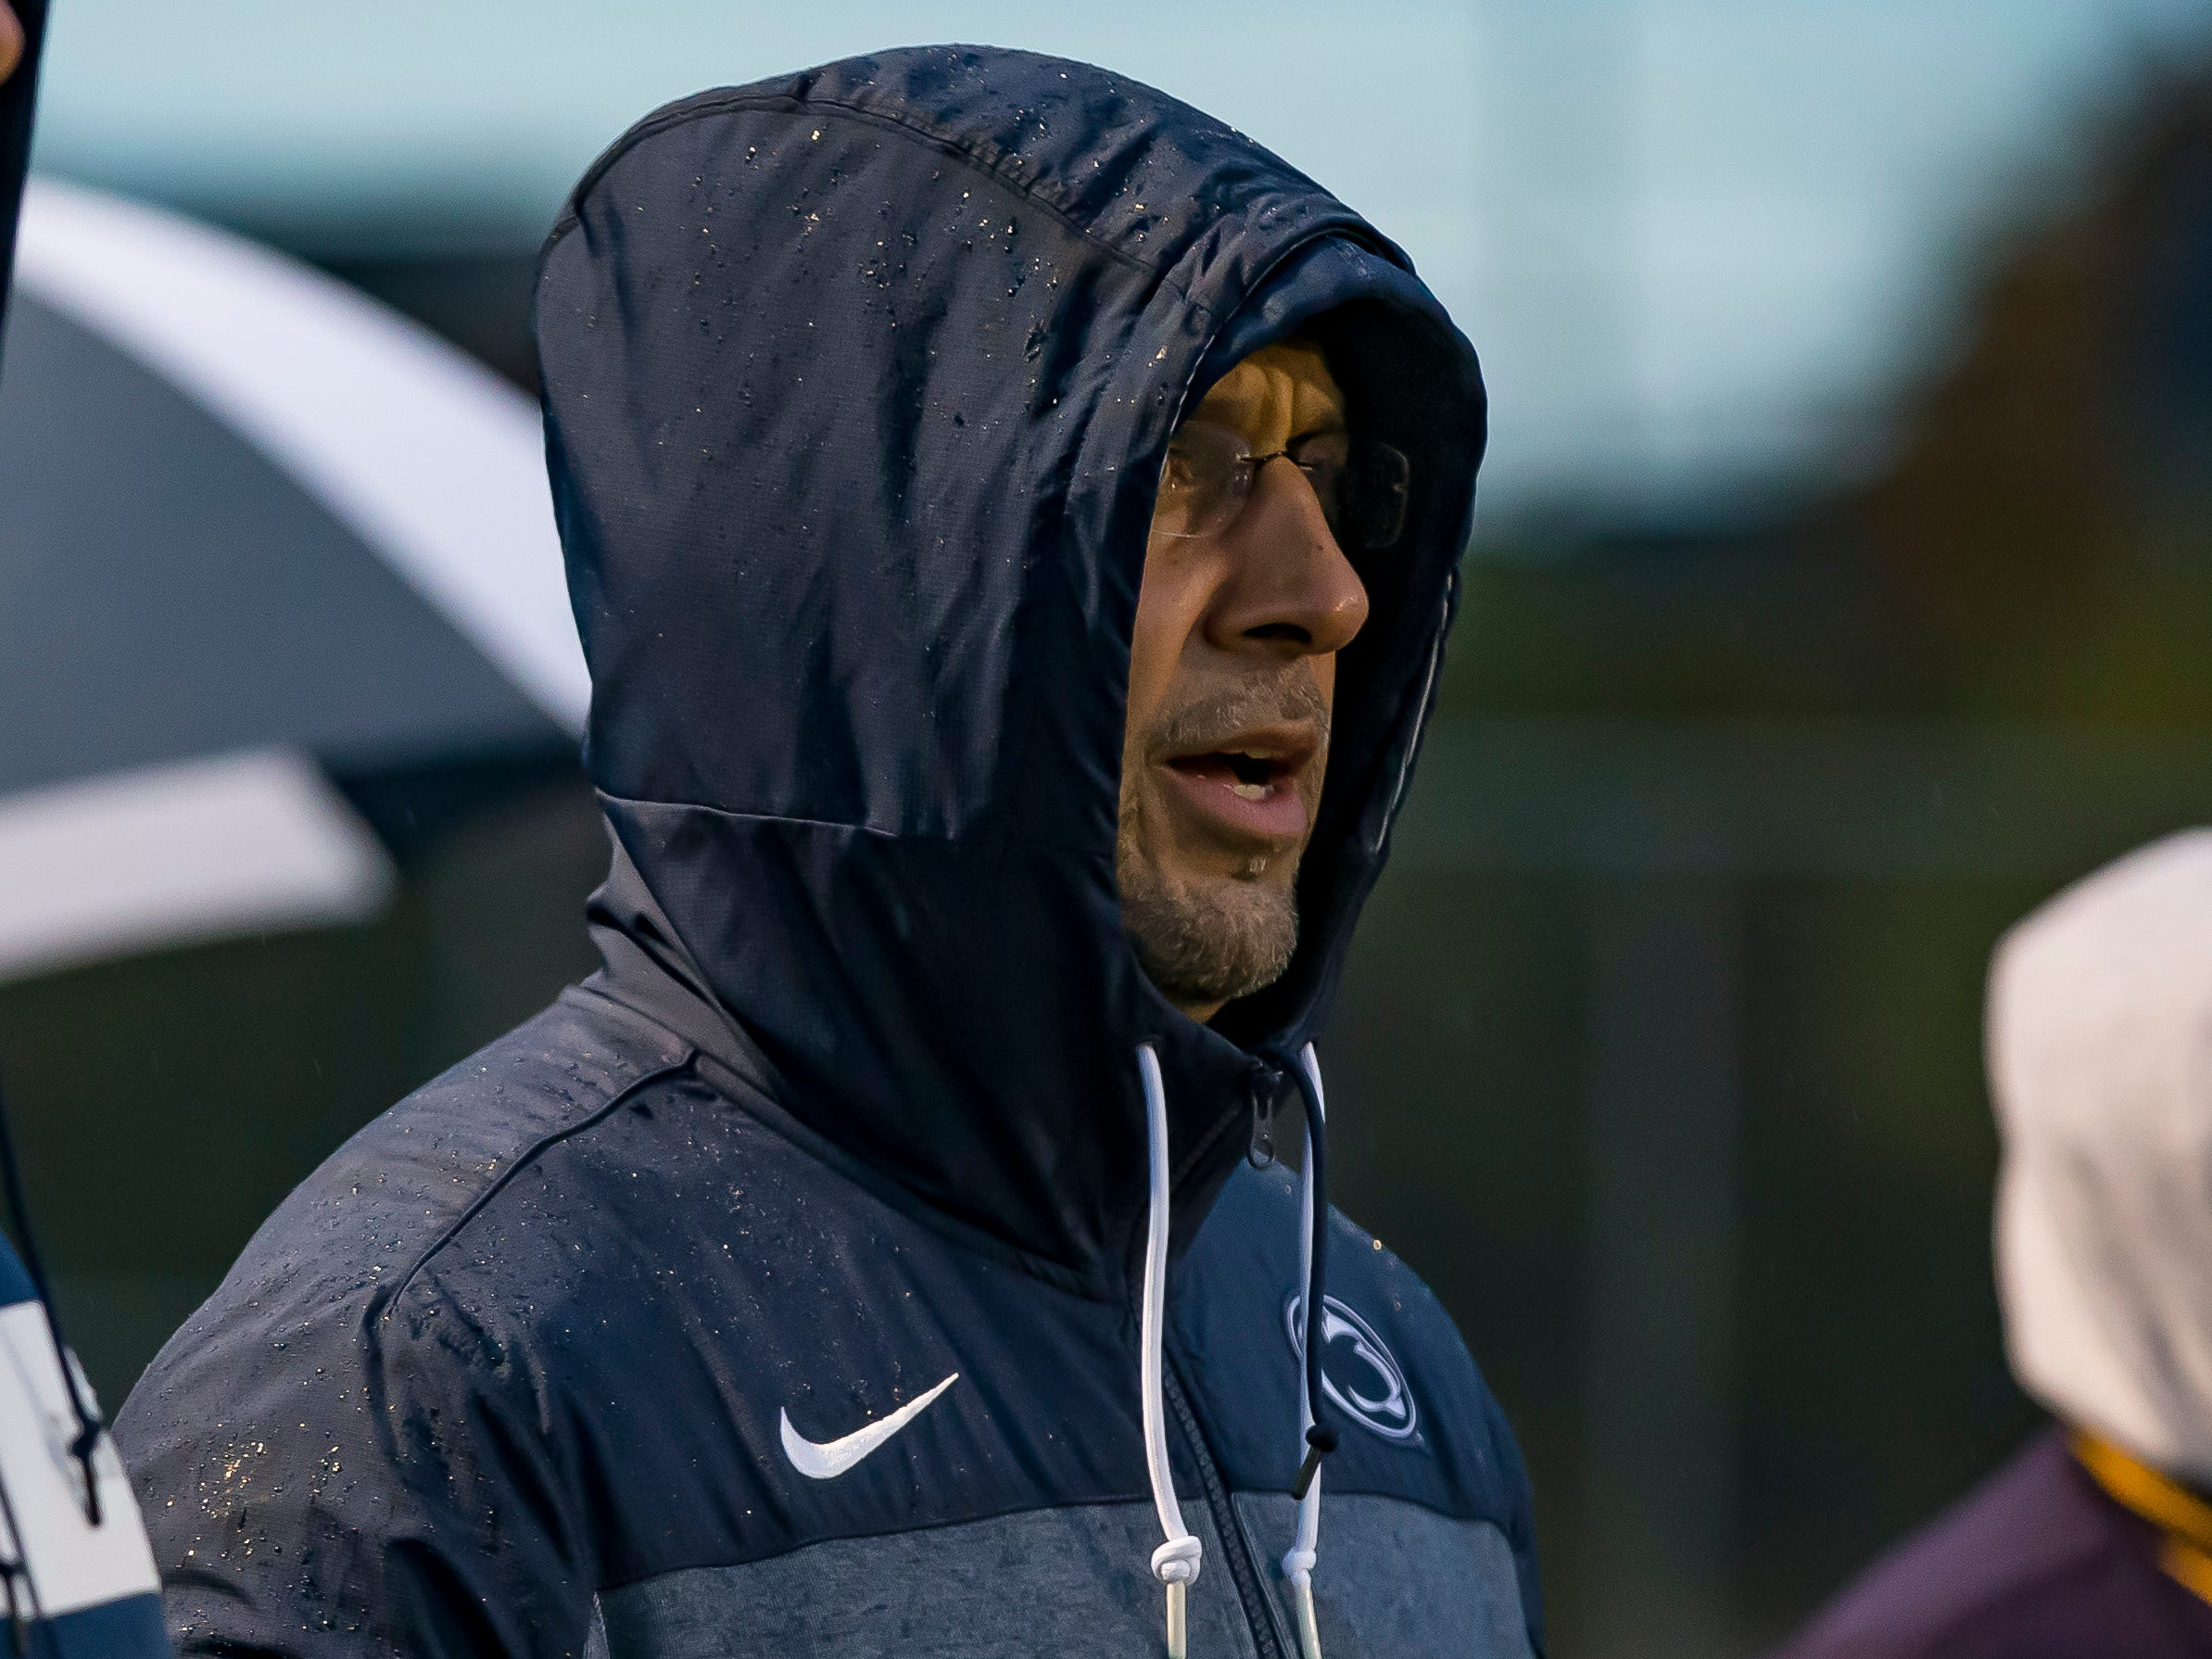 Penn State head coach James Franklin watches the game action from the side lines.